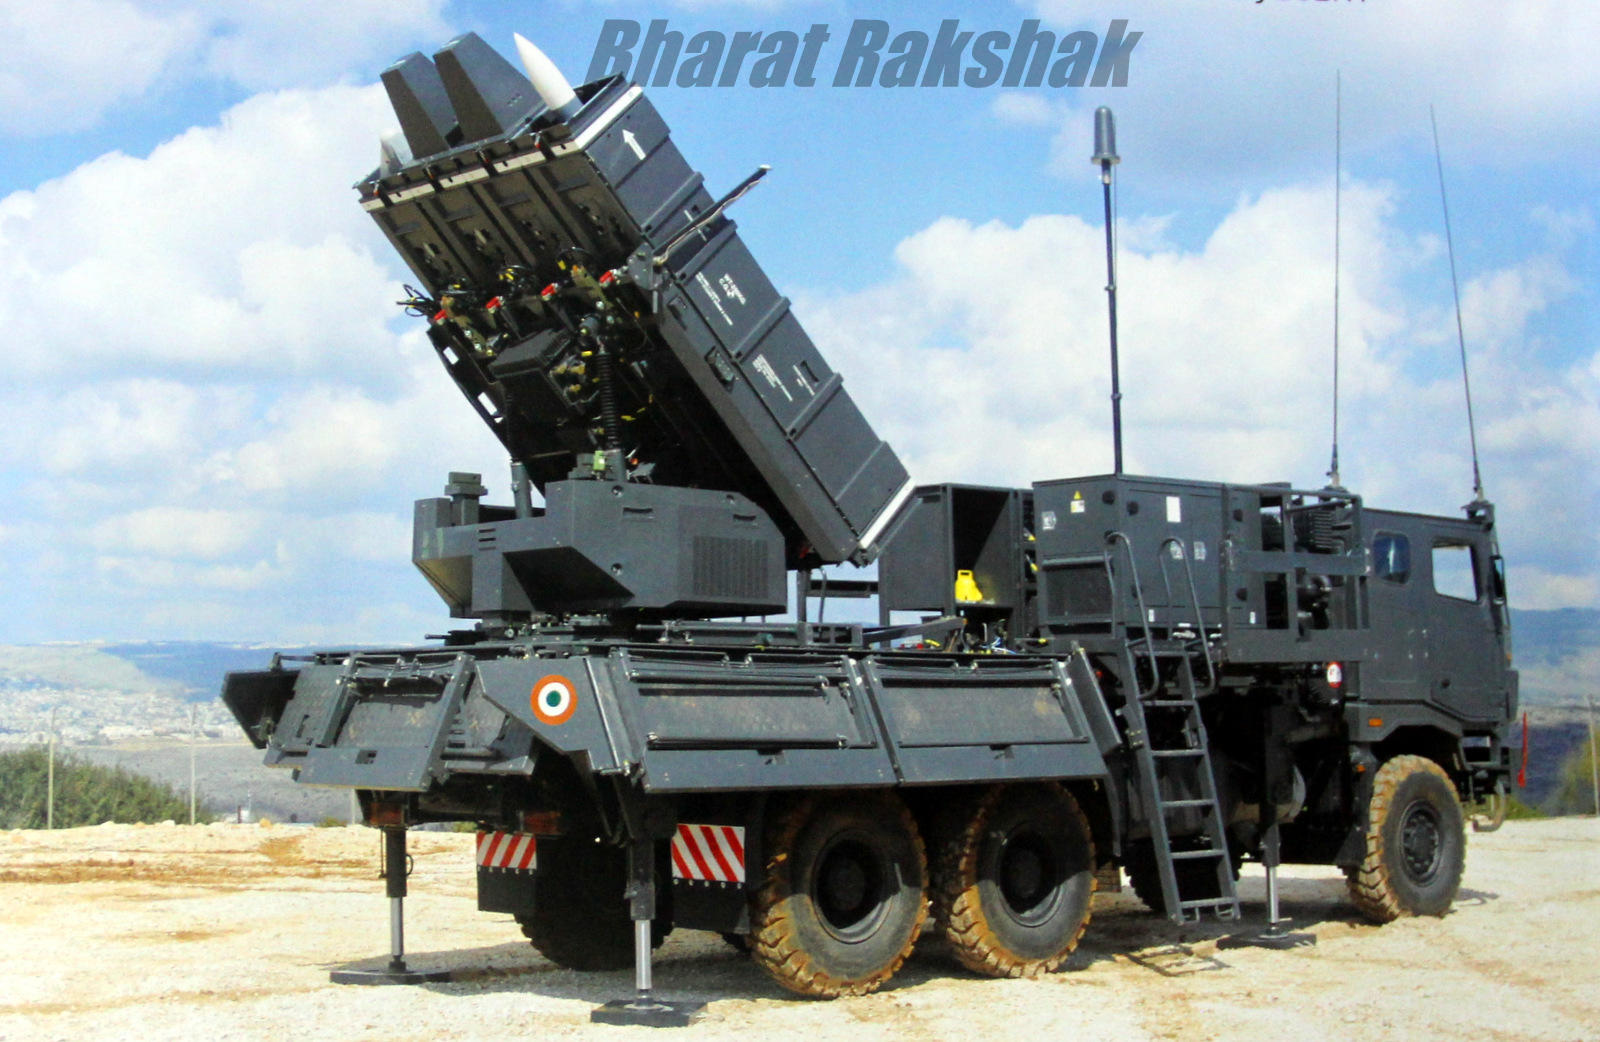 The first official photograph of an IAF Spyder Missile system on the net